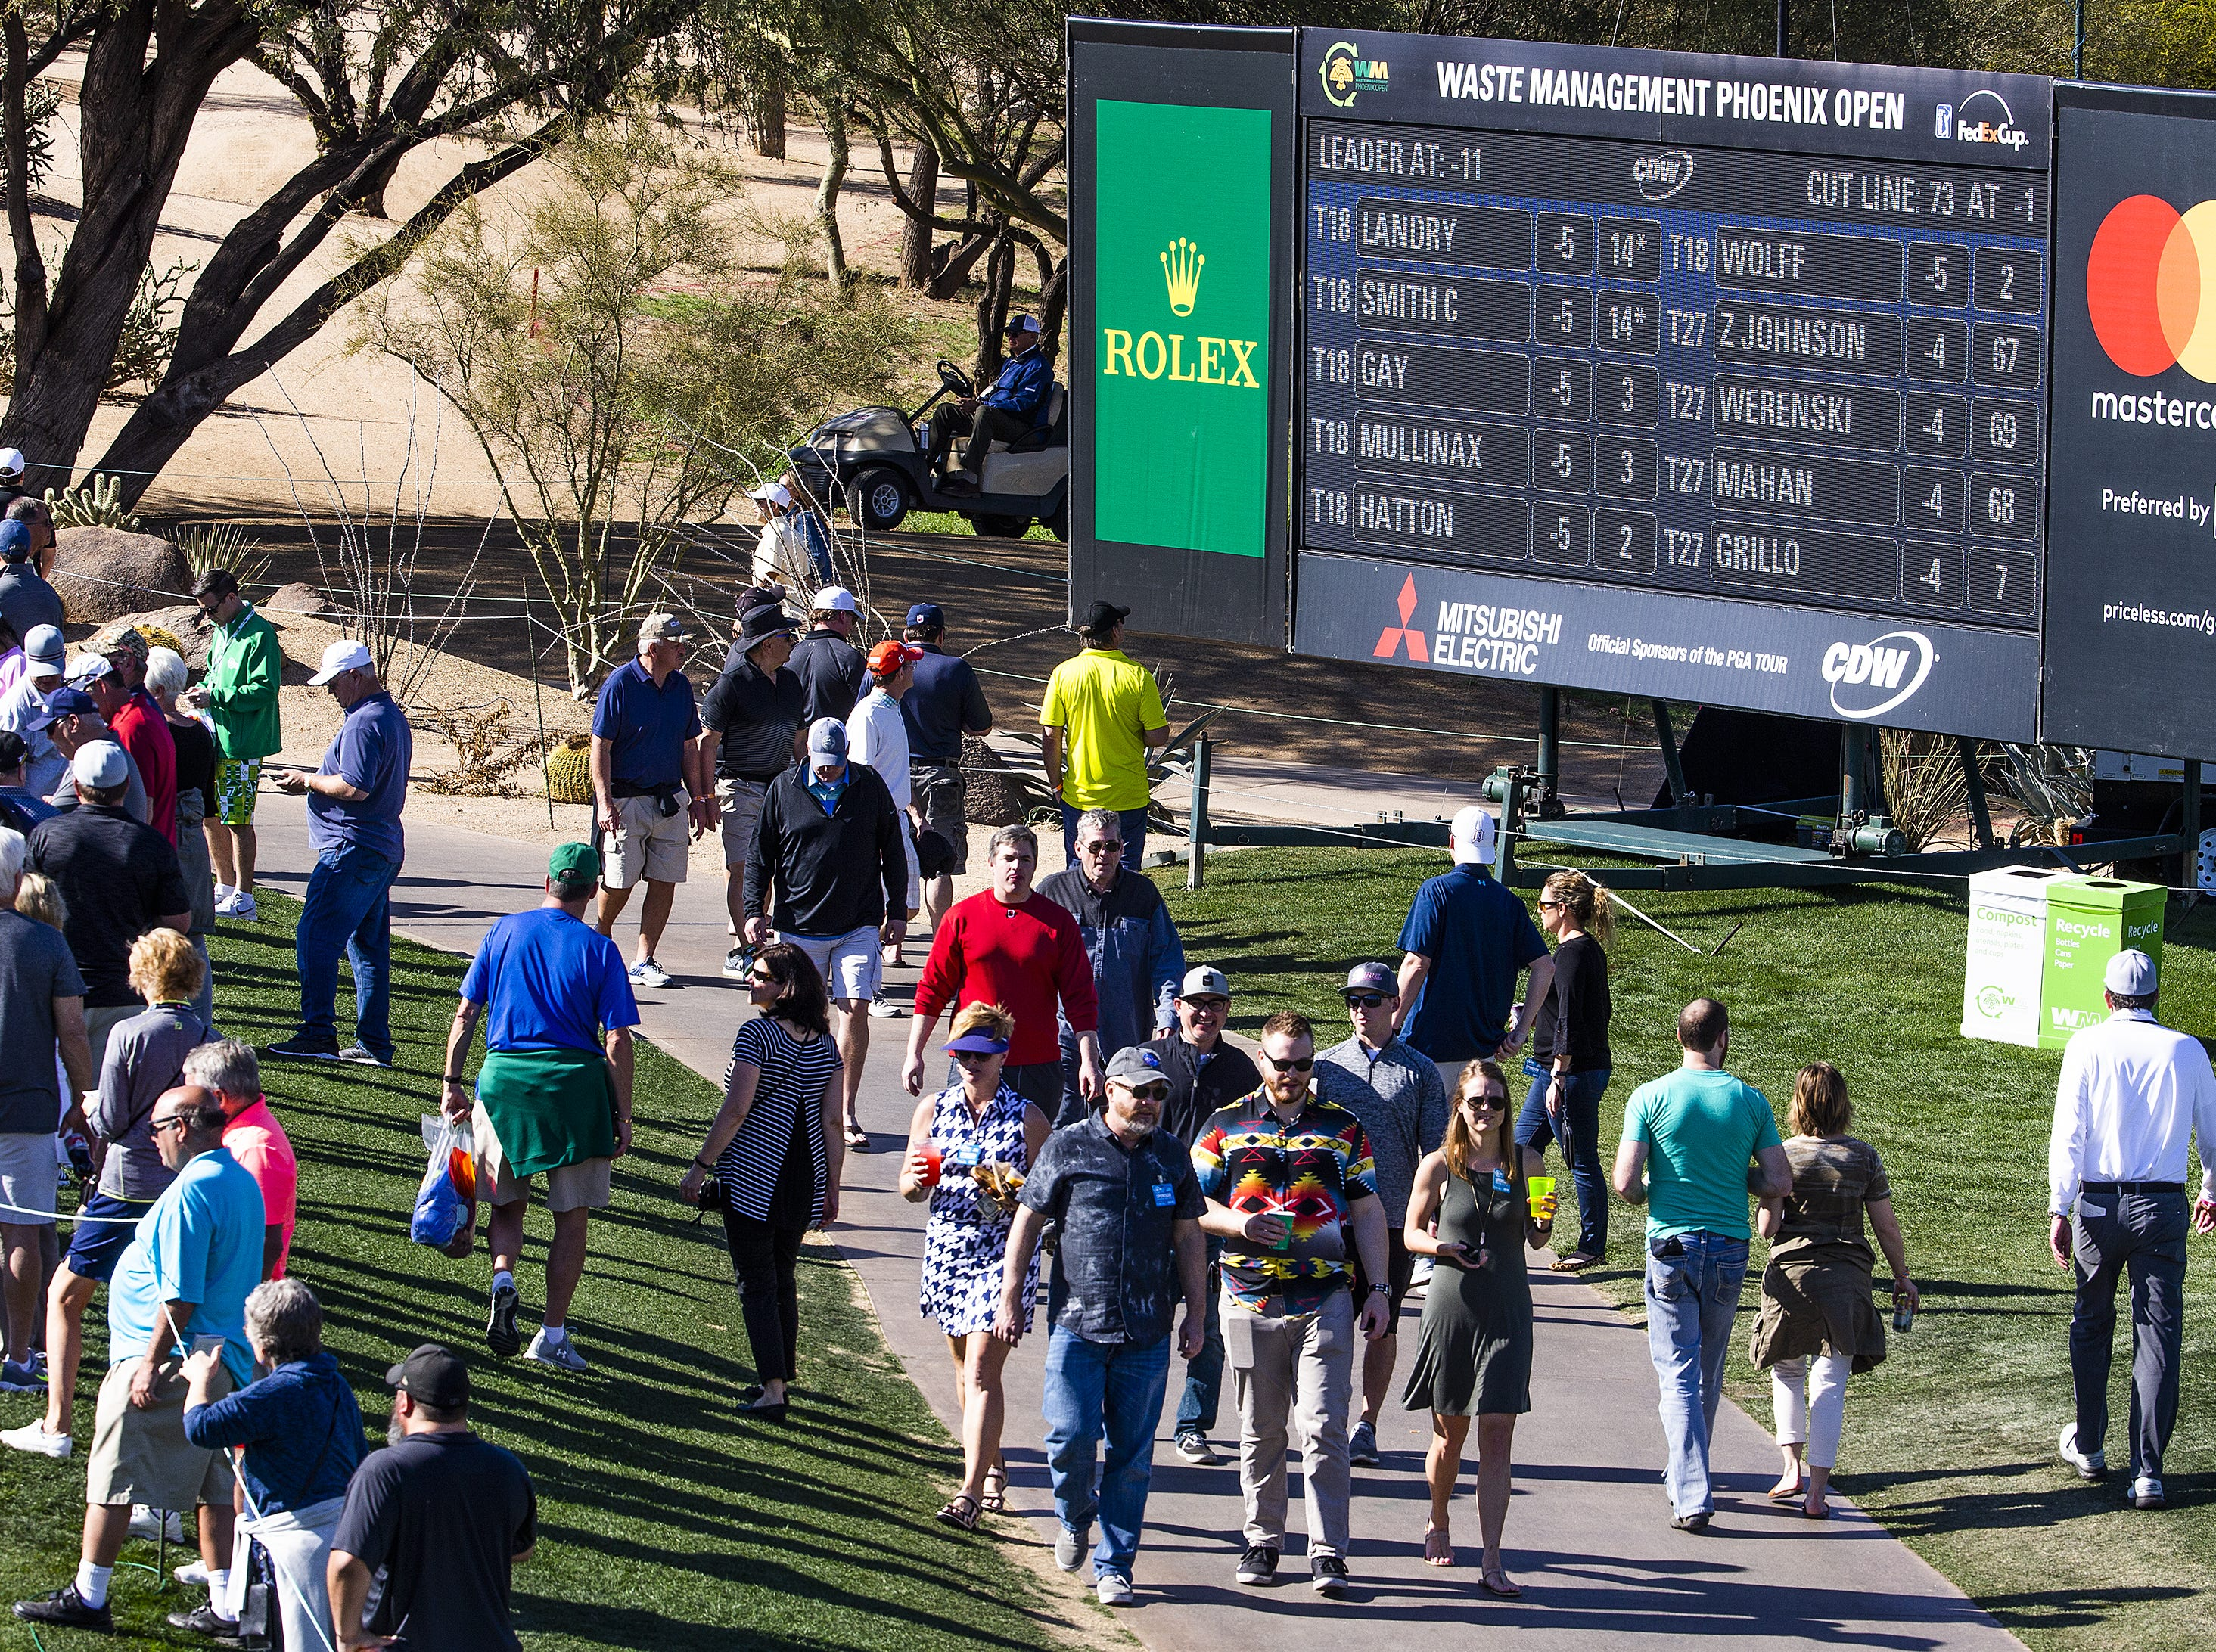 The crowd makes its way past the 9th hole during the second round of the Waste Management Phoenix Open at the TPC Scottsdale, Friday, February 1, 2019.